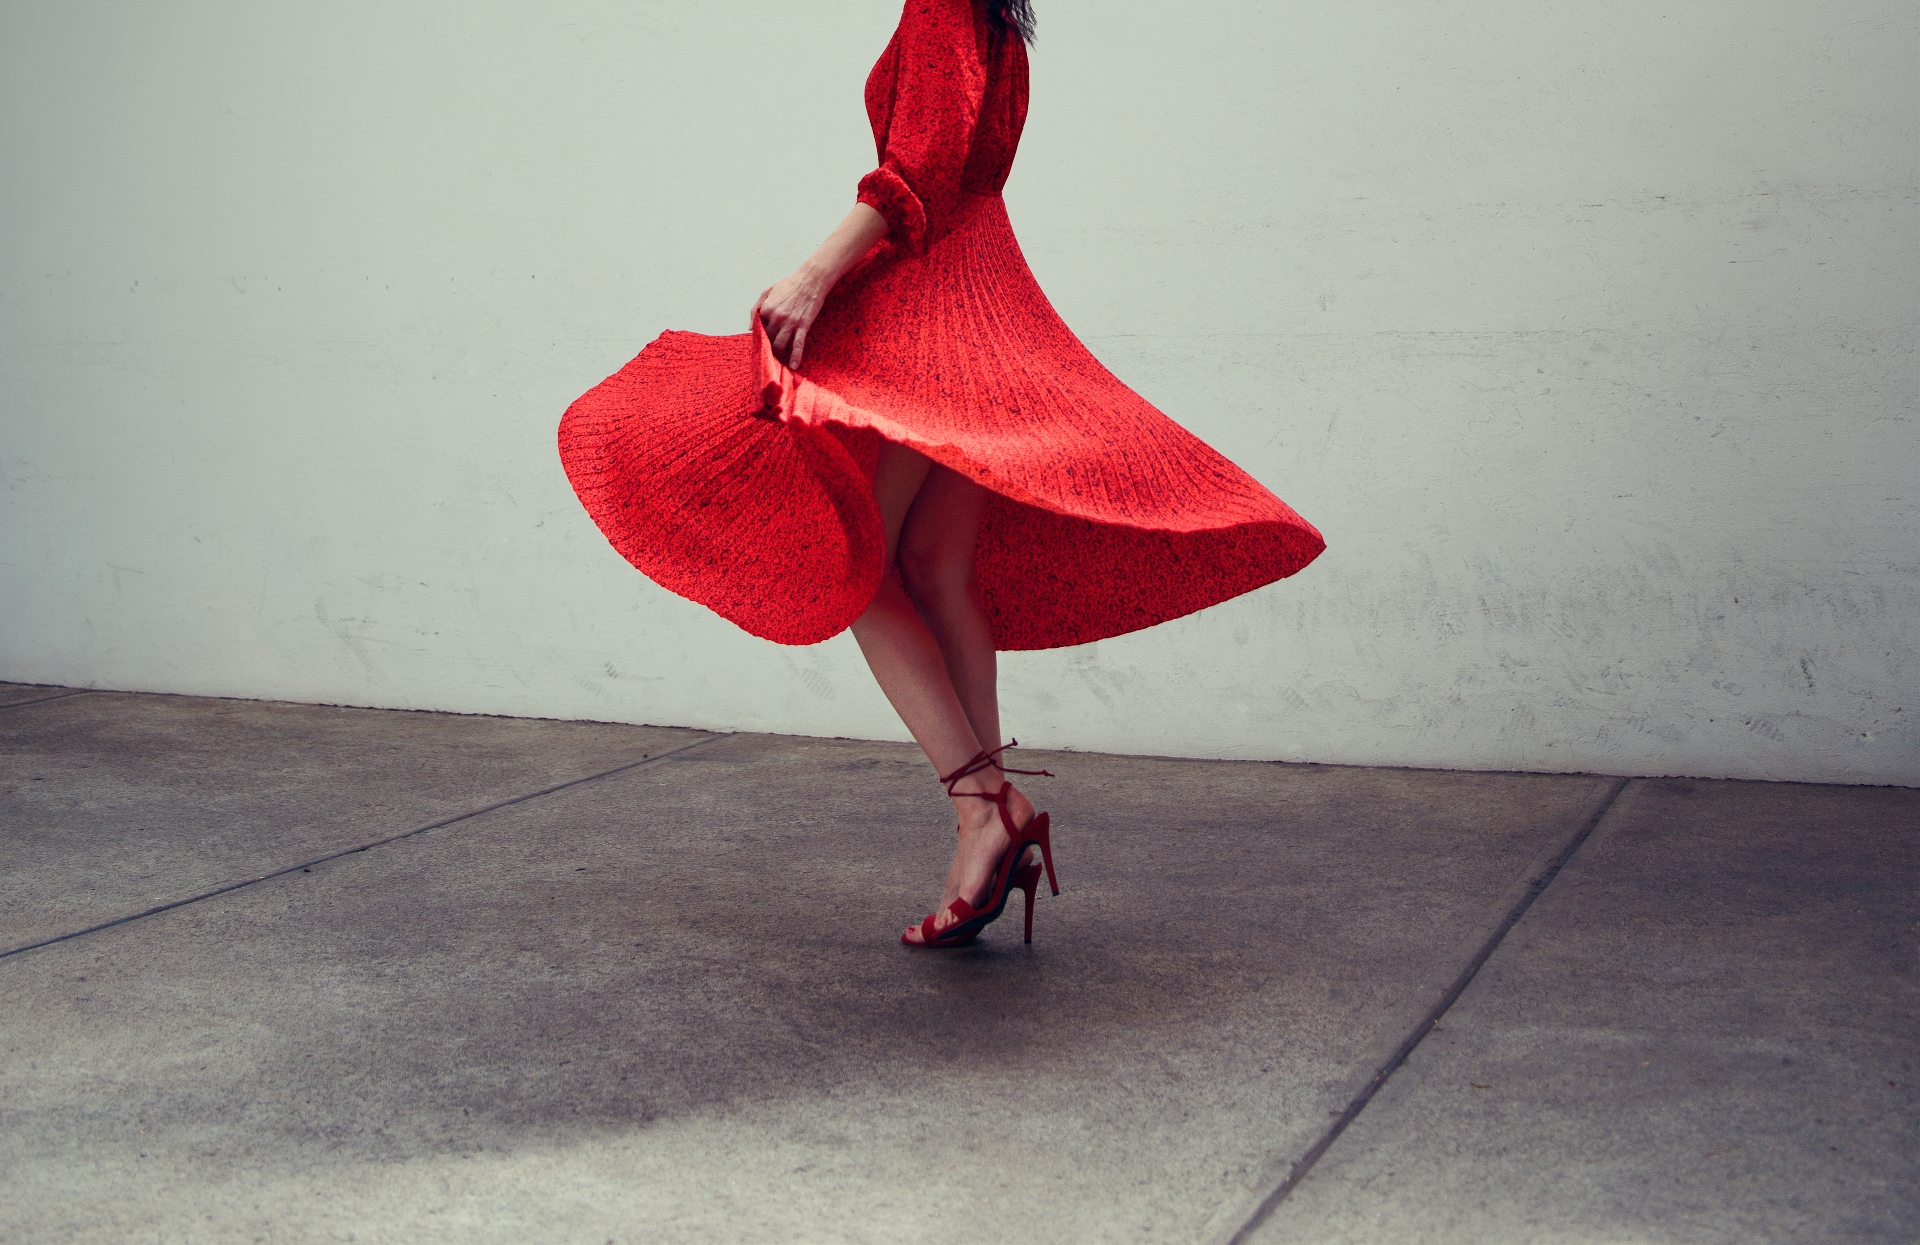 Dancing in a red dress